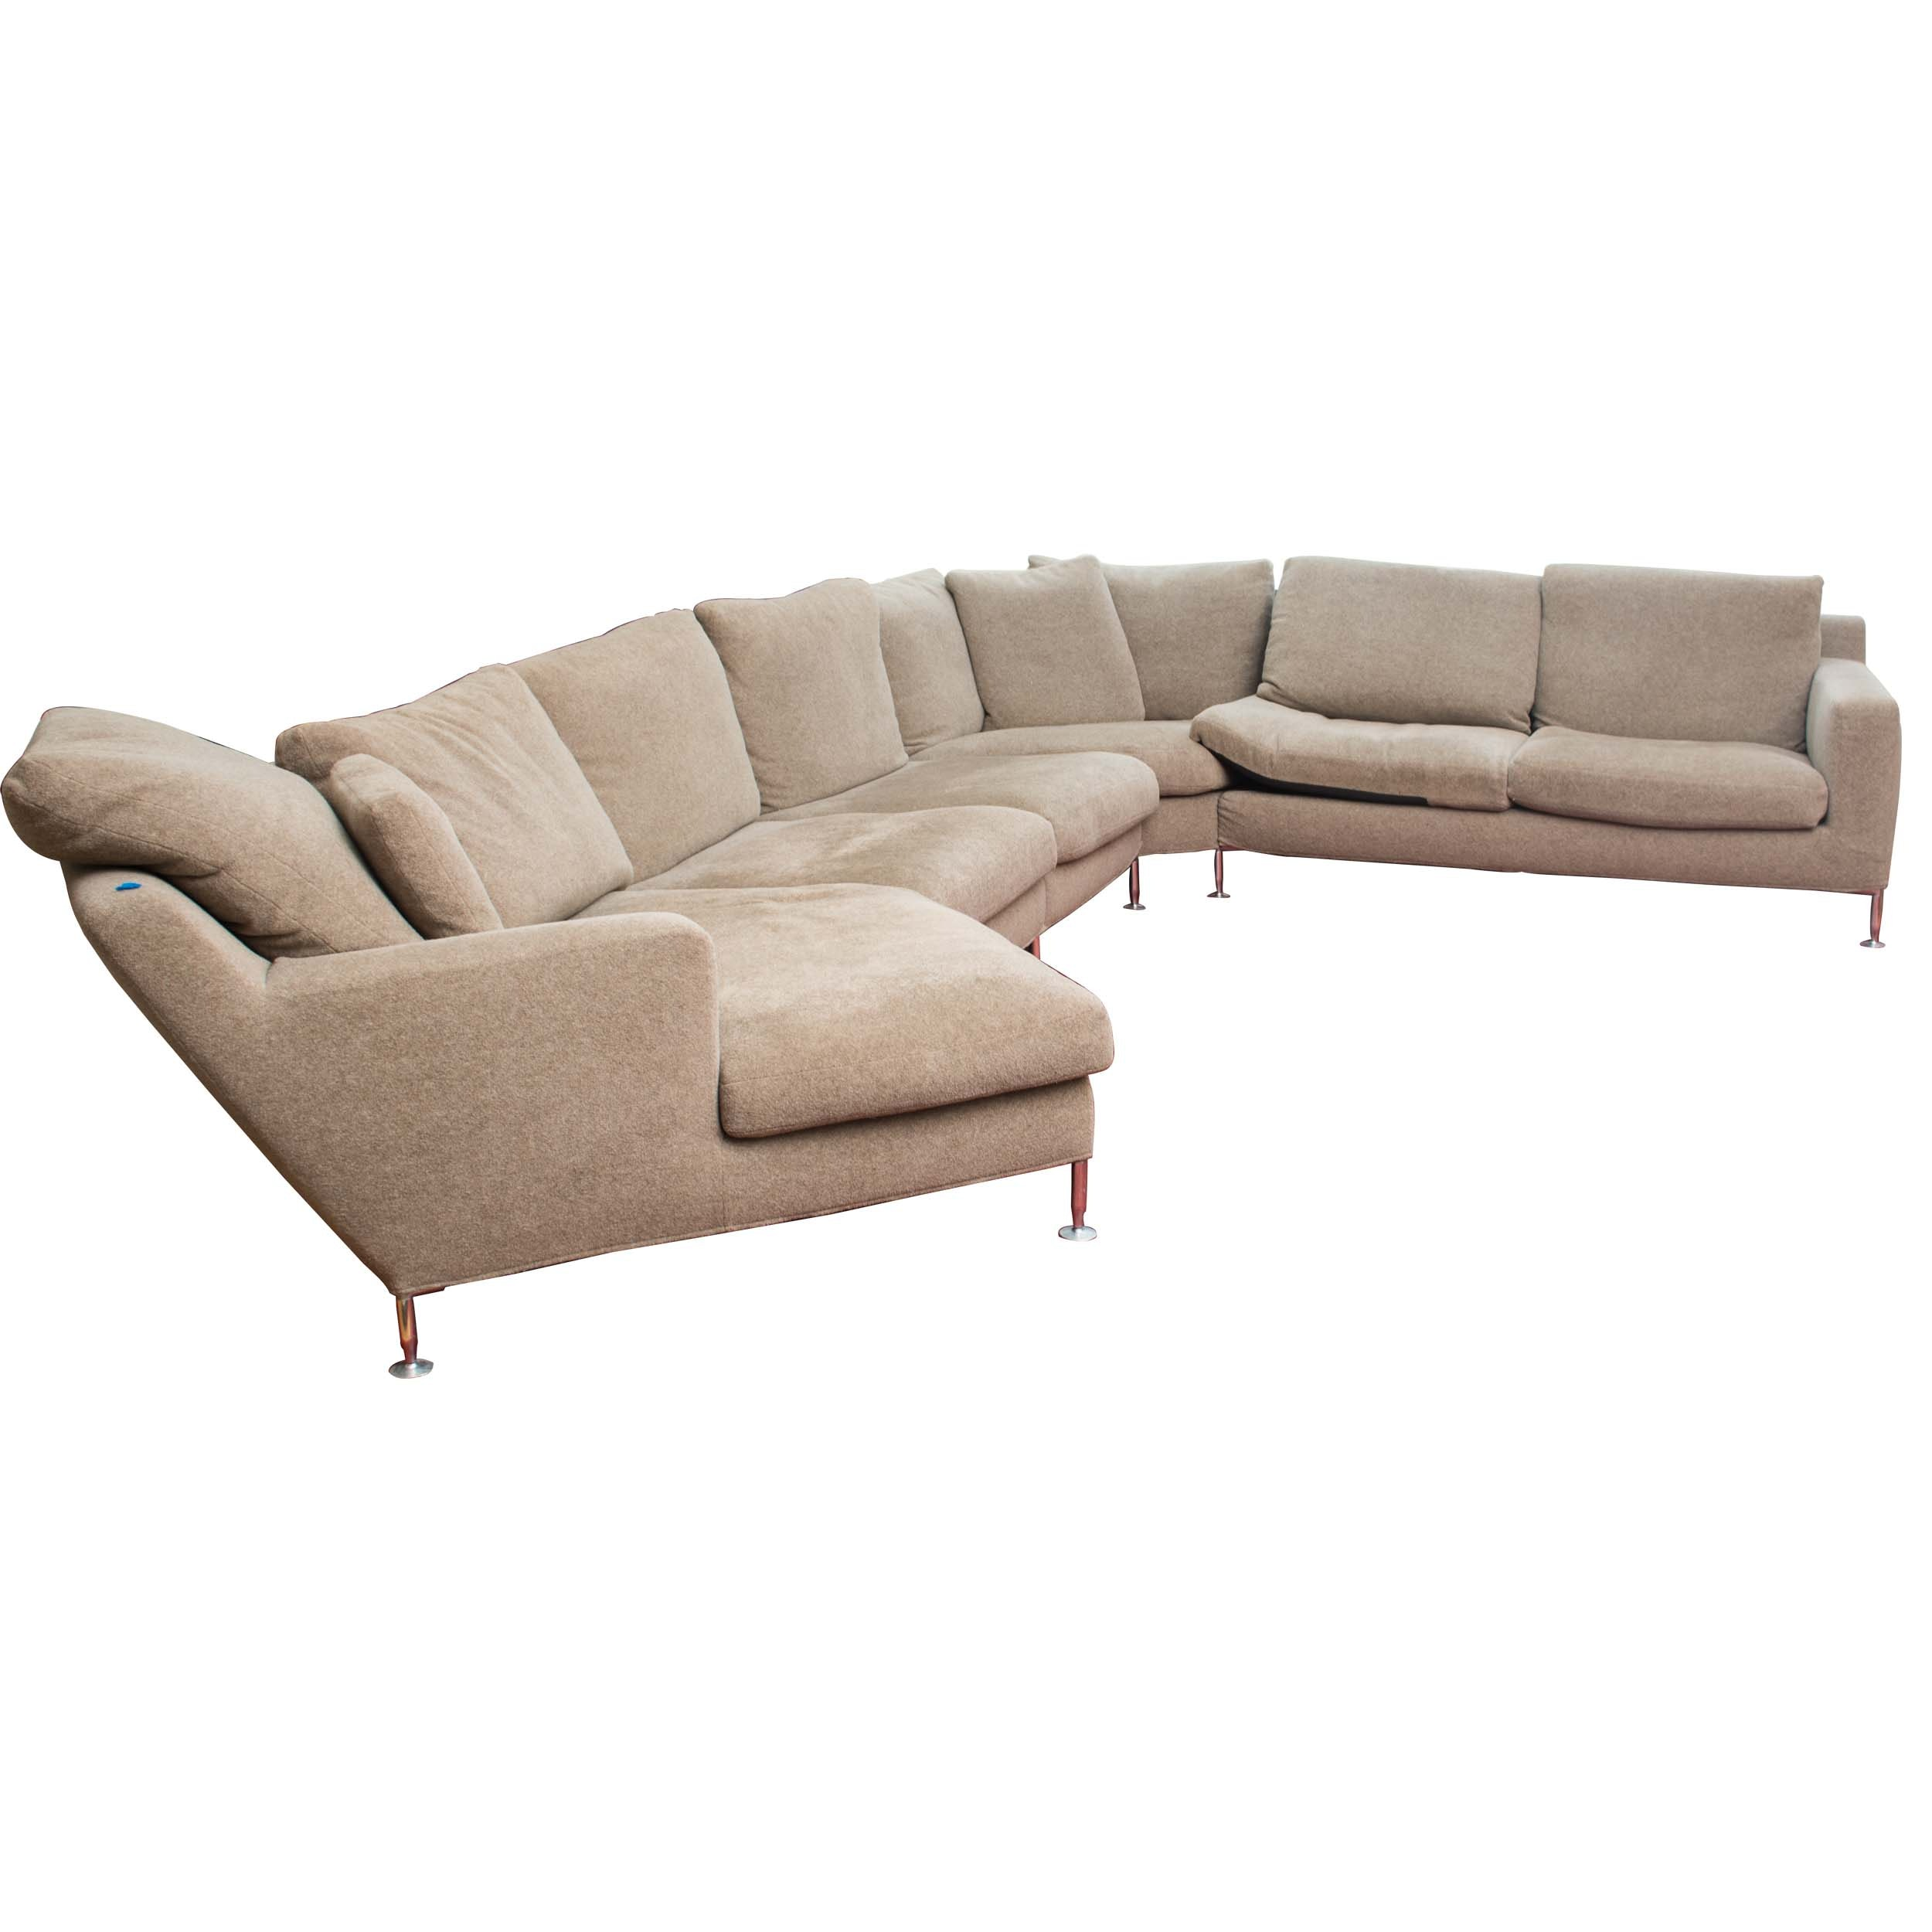 Quot Harry Quot Large Sectional Sofa By Antonio Citterio For B Amp B